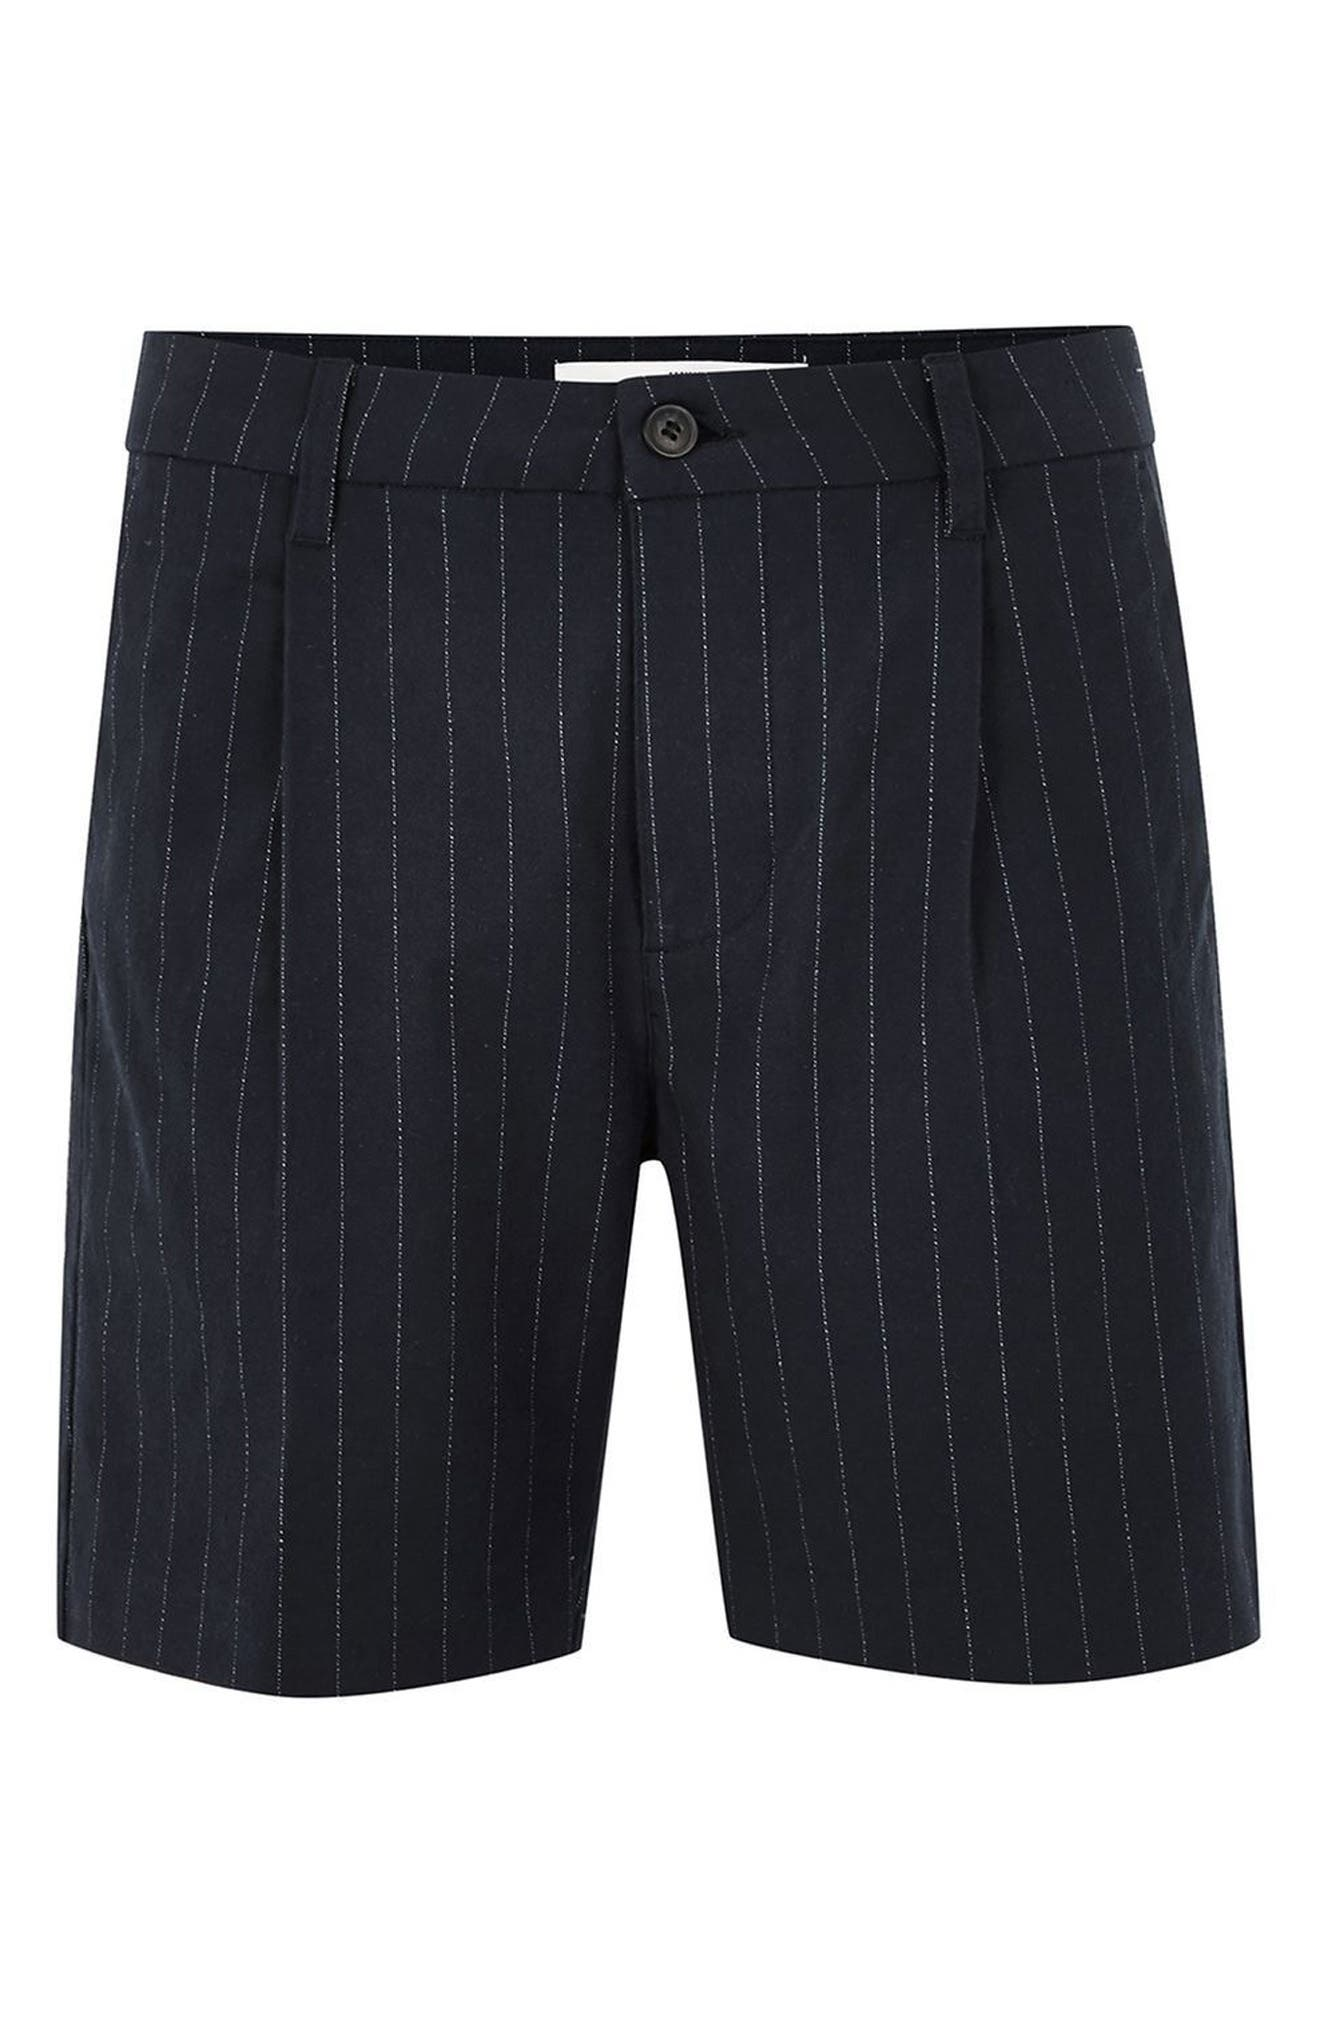 Pinstripe Shorts,                             Alternate thumbnail 3, color,                             Navy Blue